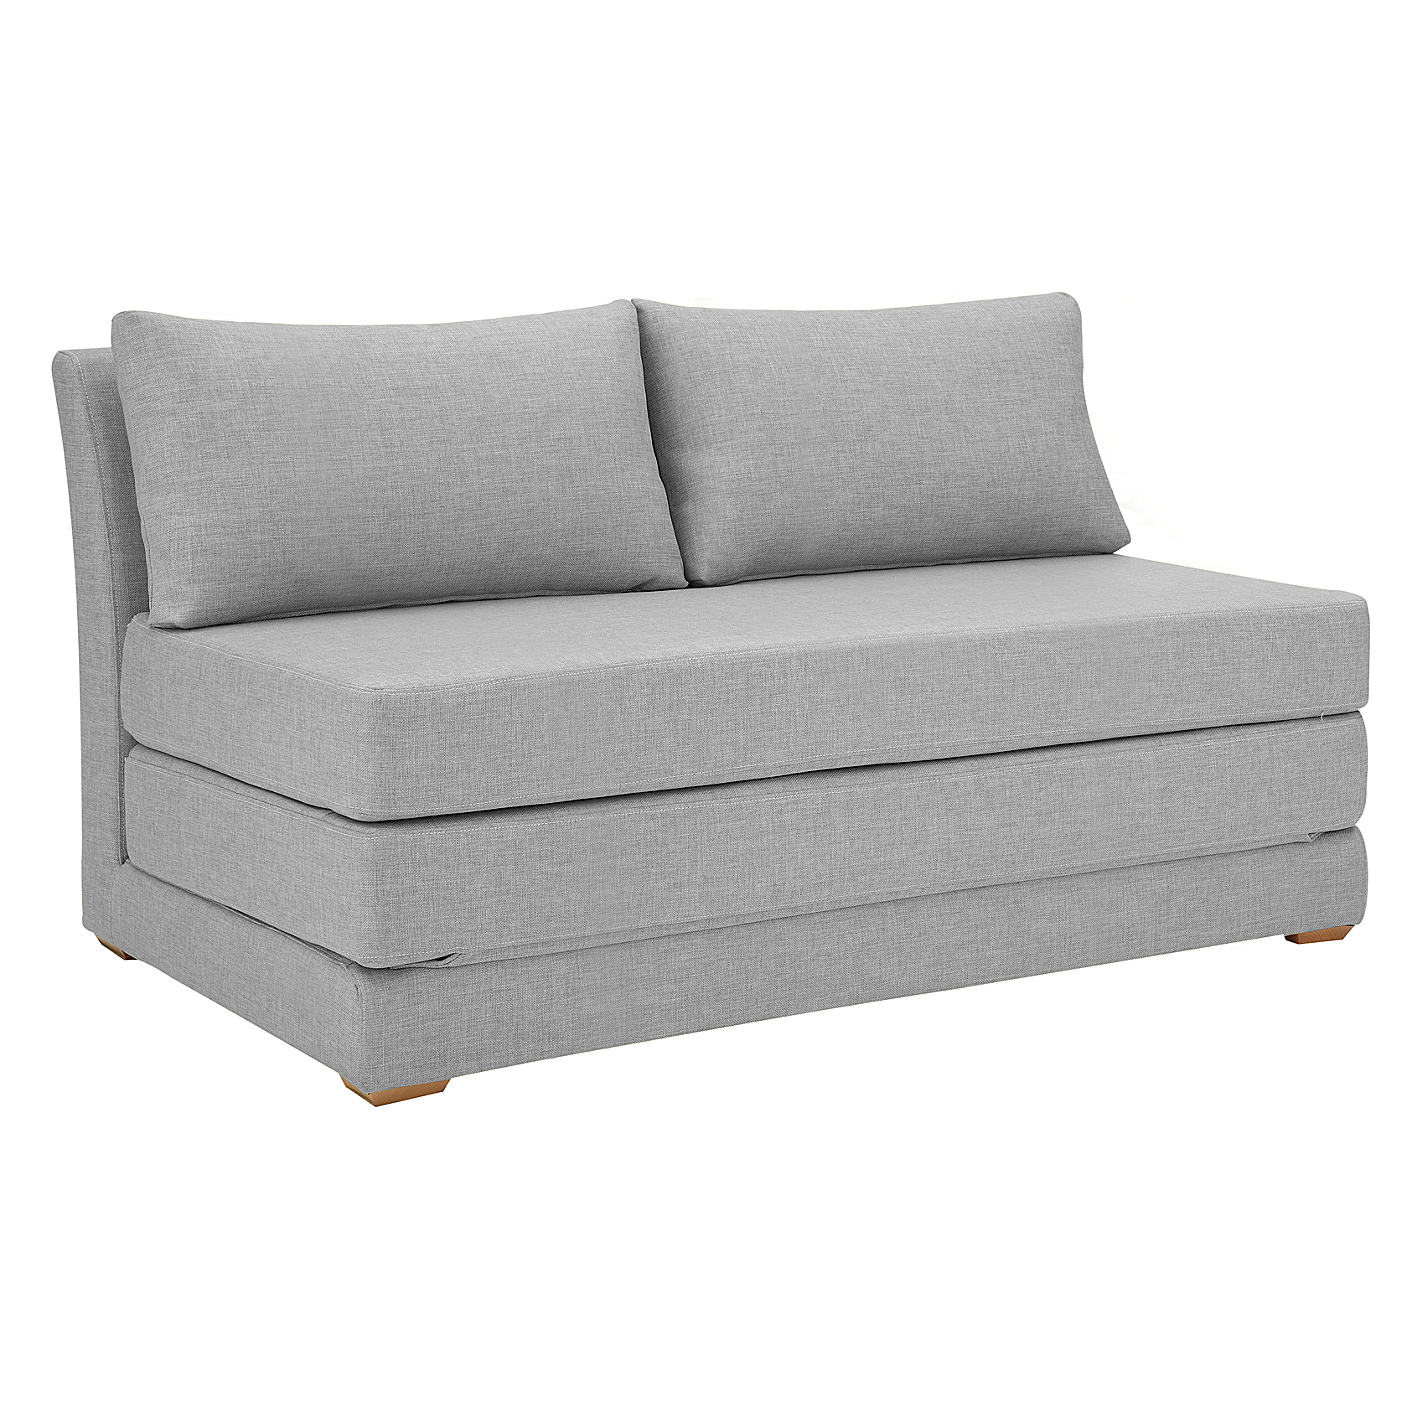 Small Foam Sofa Bed Chair Corner Available In 3